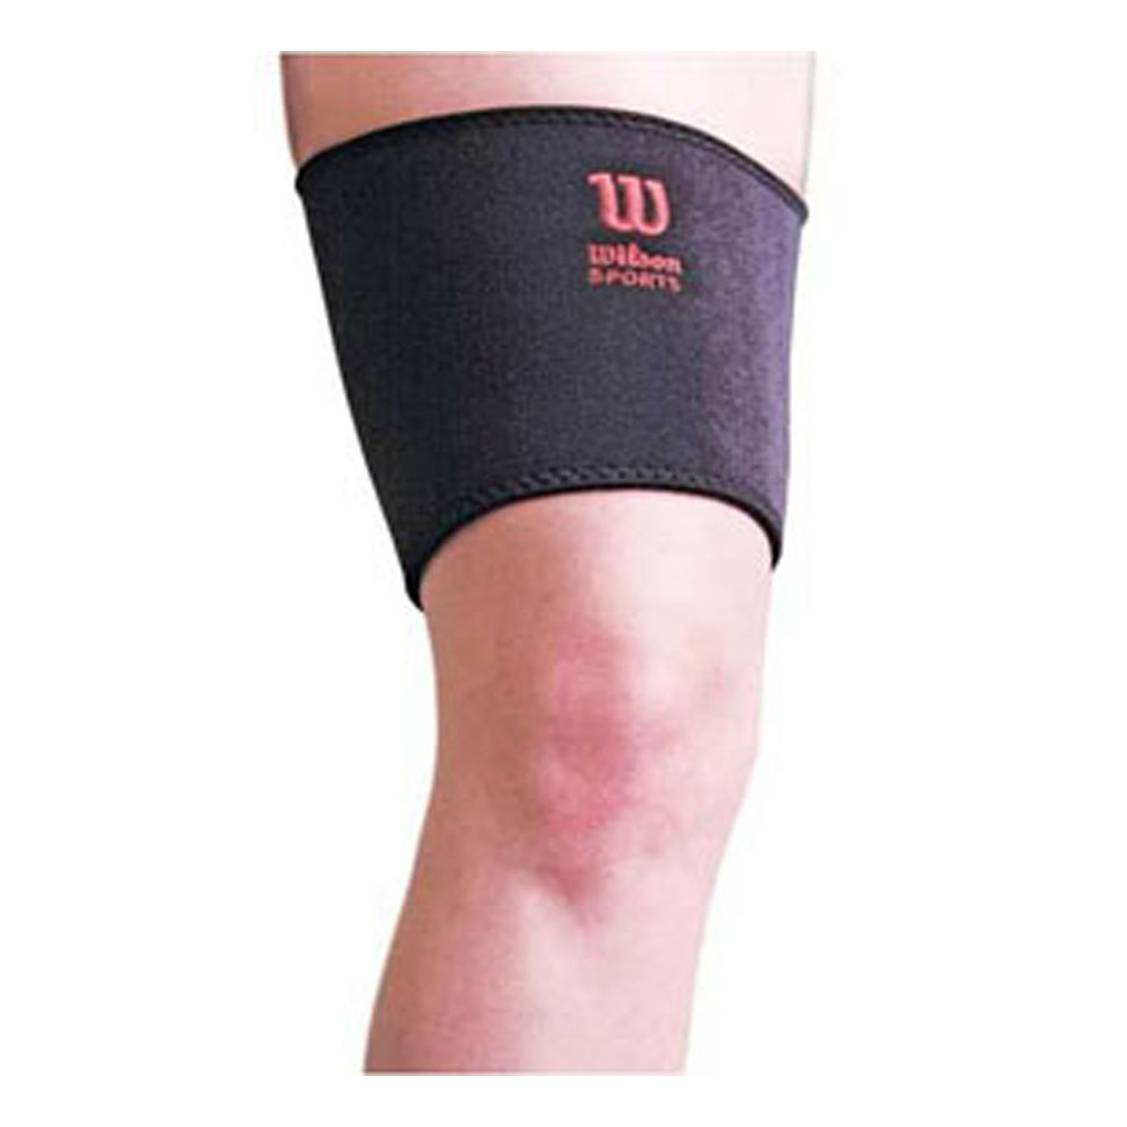 0025826 – AW104 Hamstring Support